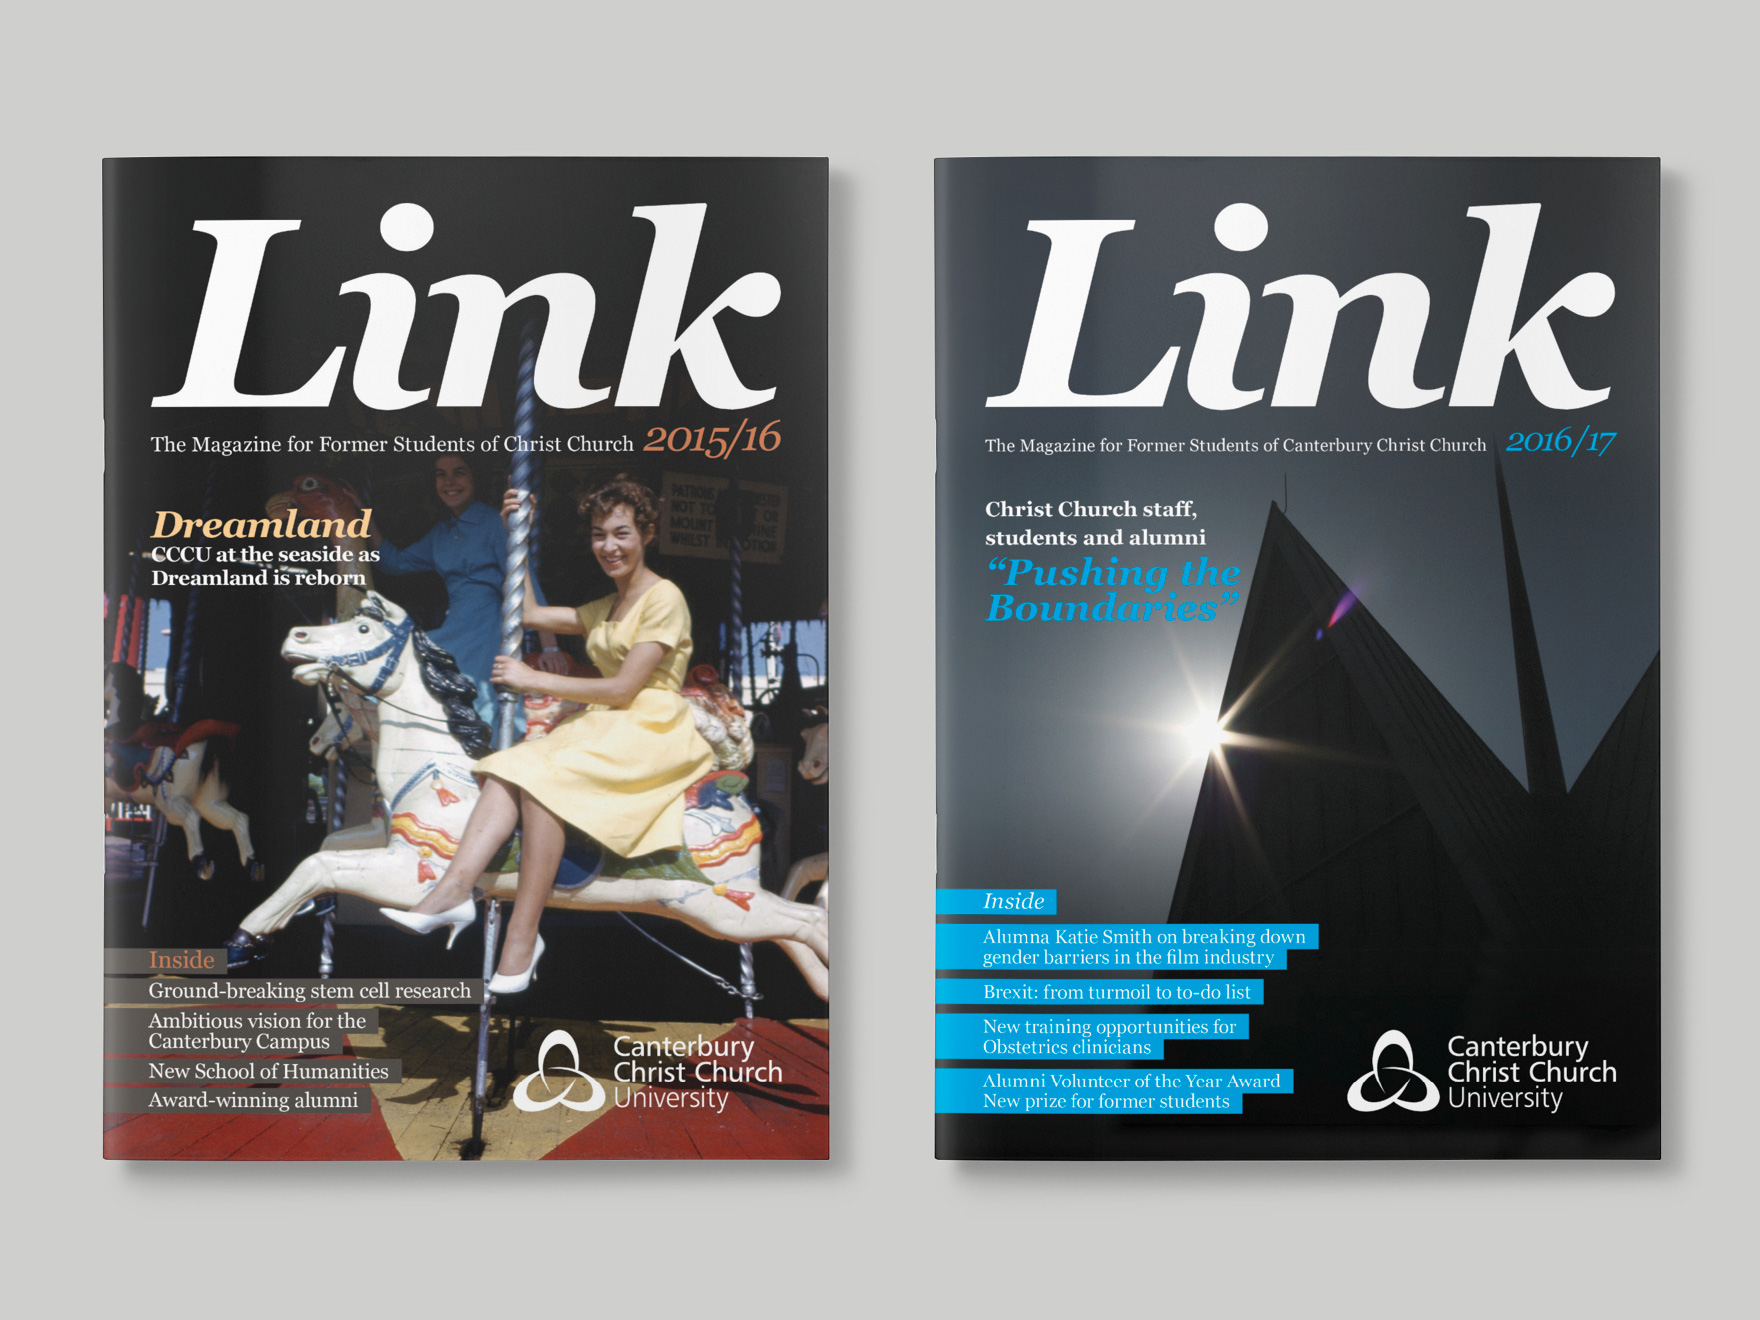 Front covers of the 2015 and 2016 issues of issue of Link magazine